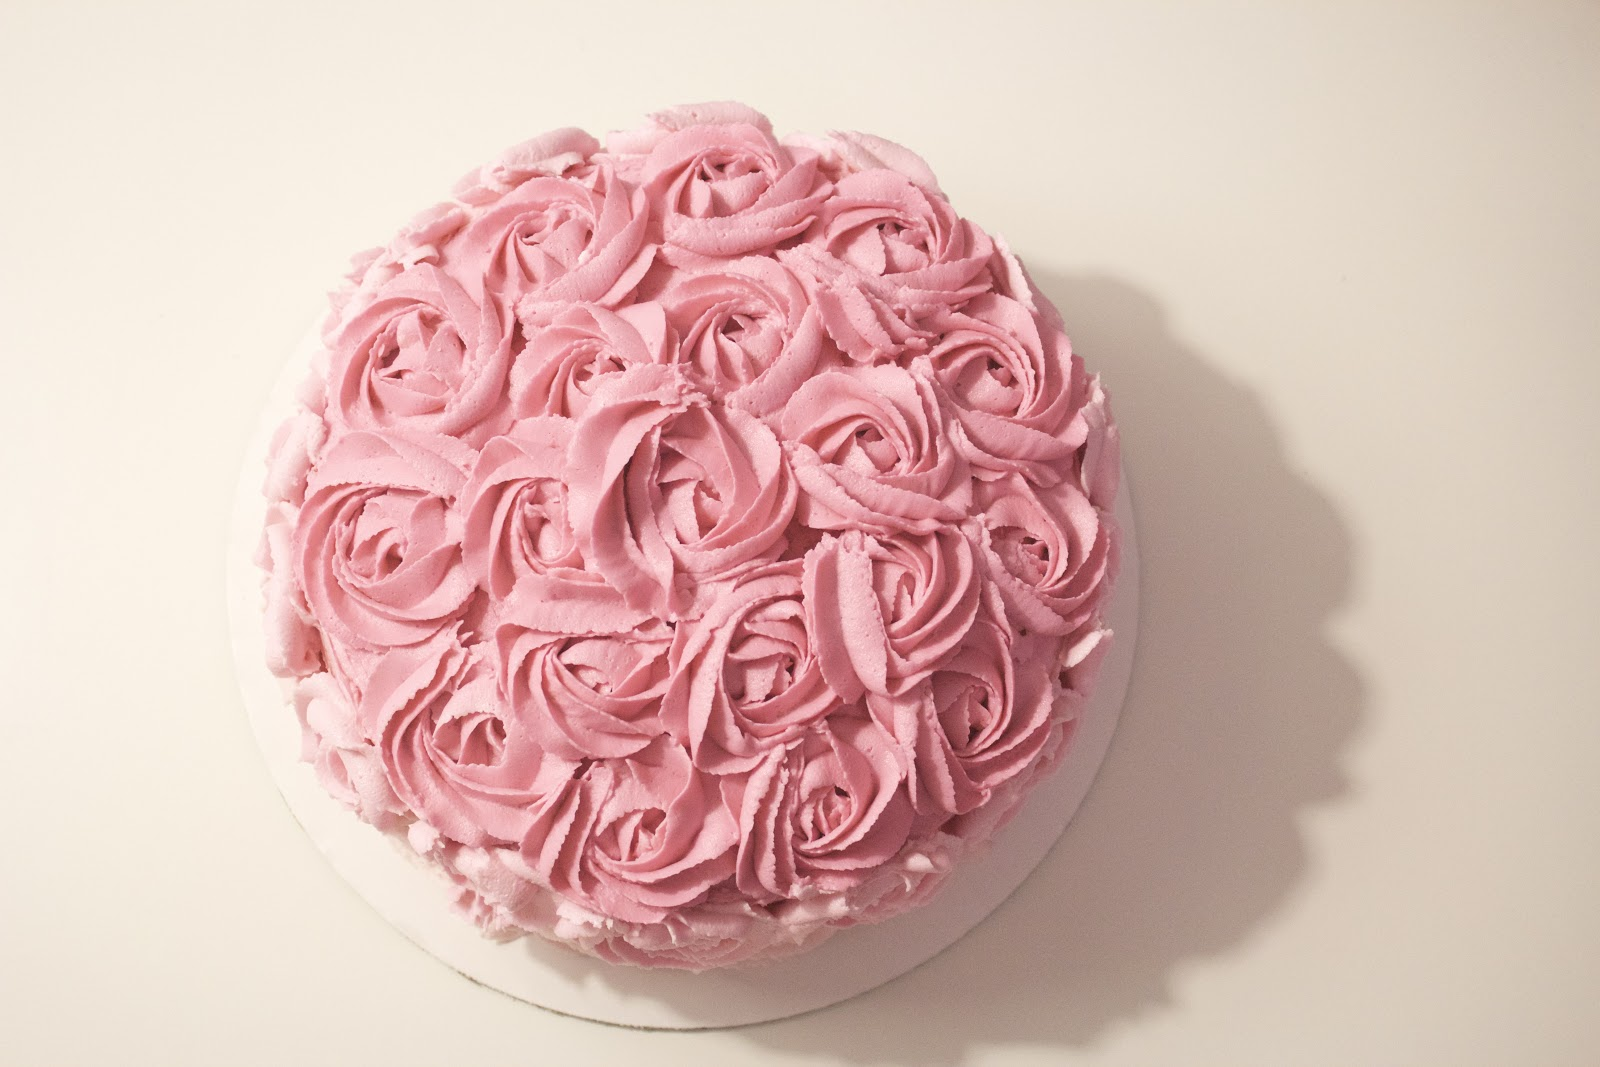 Pink Rosette Cake Images : Pink Ombre Rosette Cake good. a boutique bakery